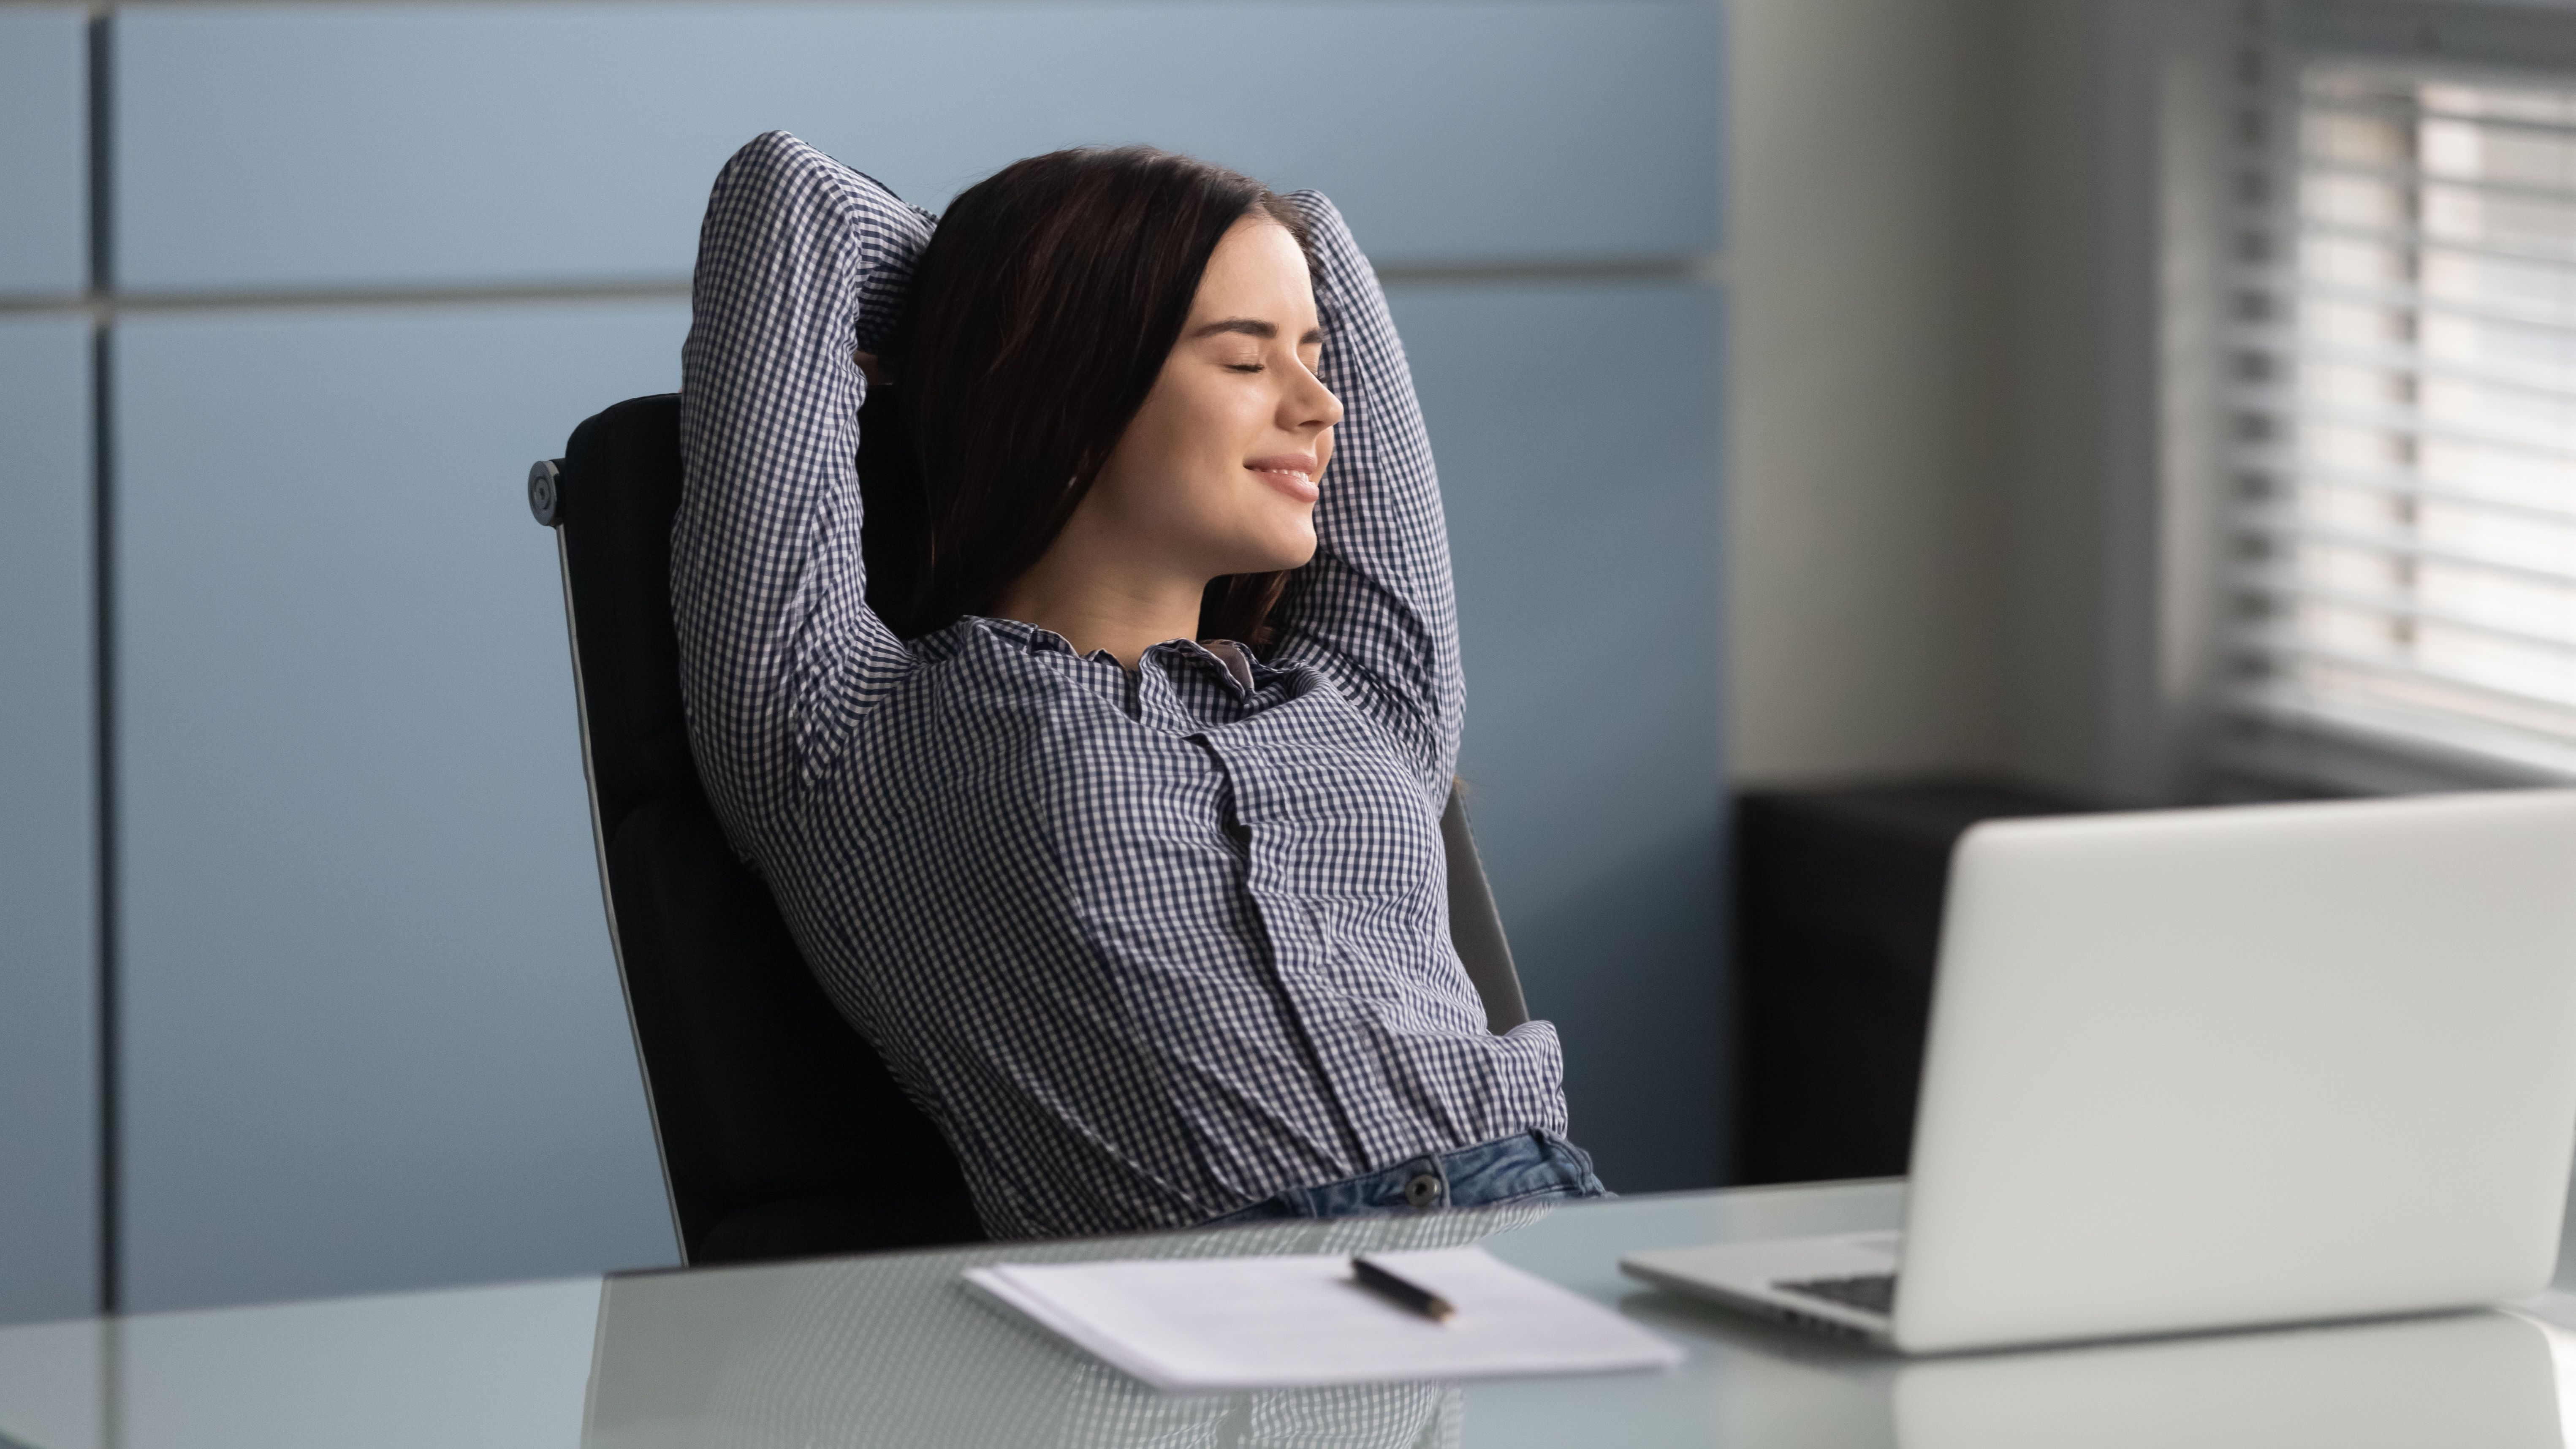 A young woman relaxing while doing a visualization